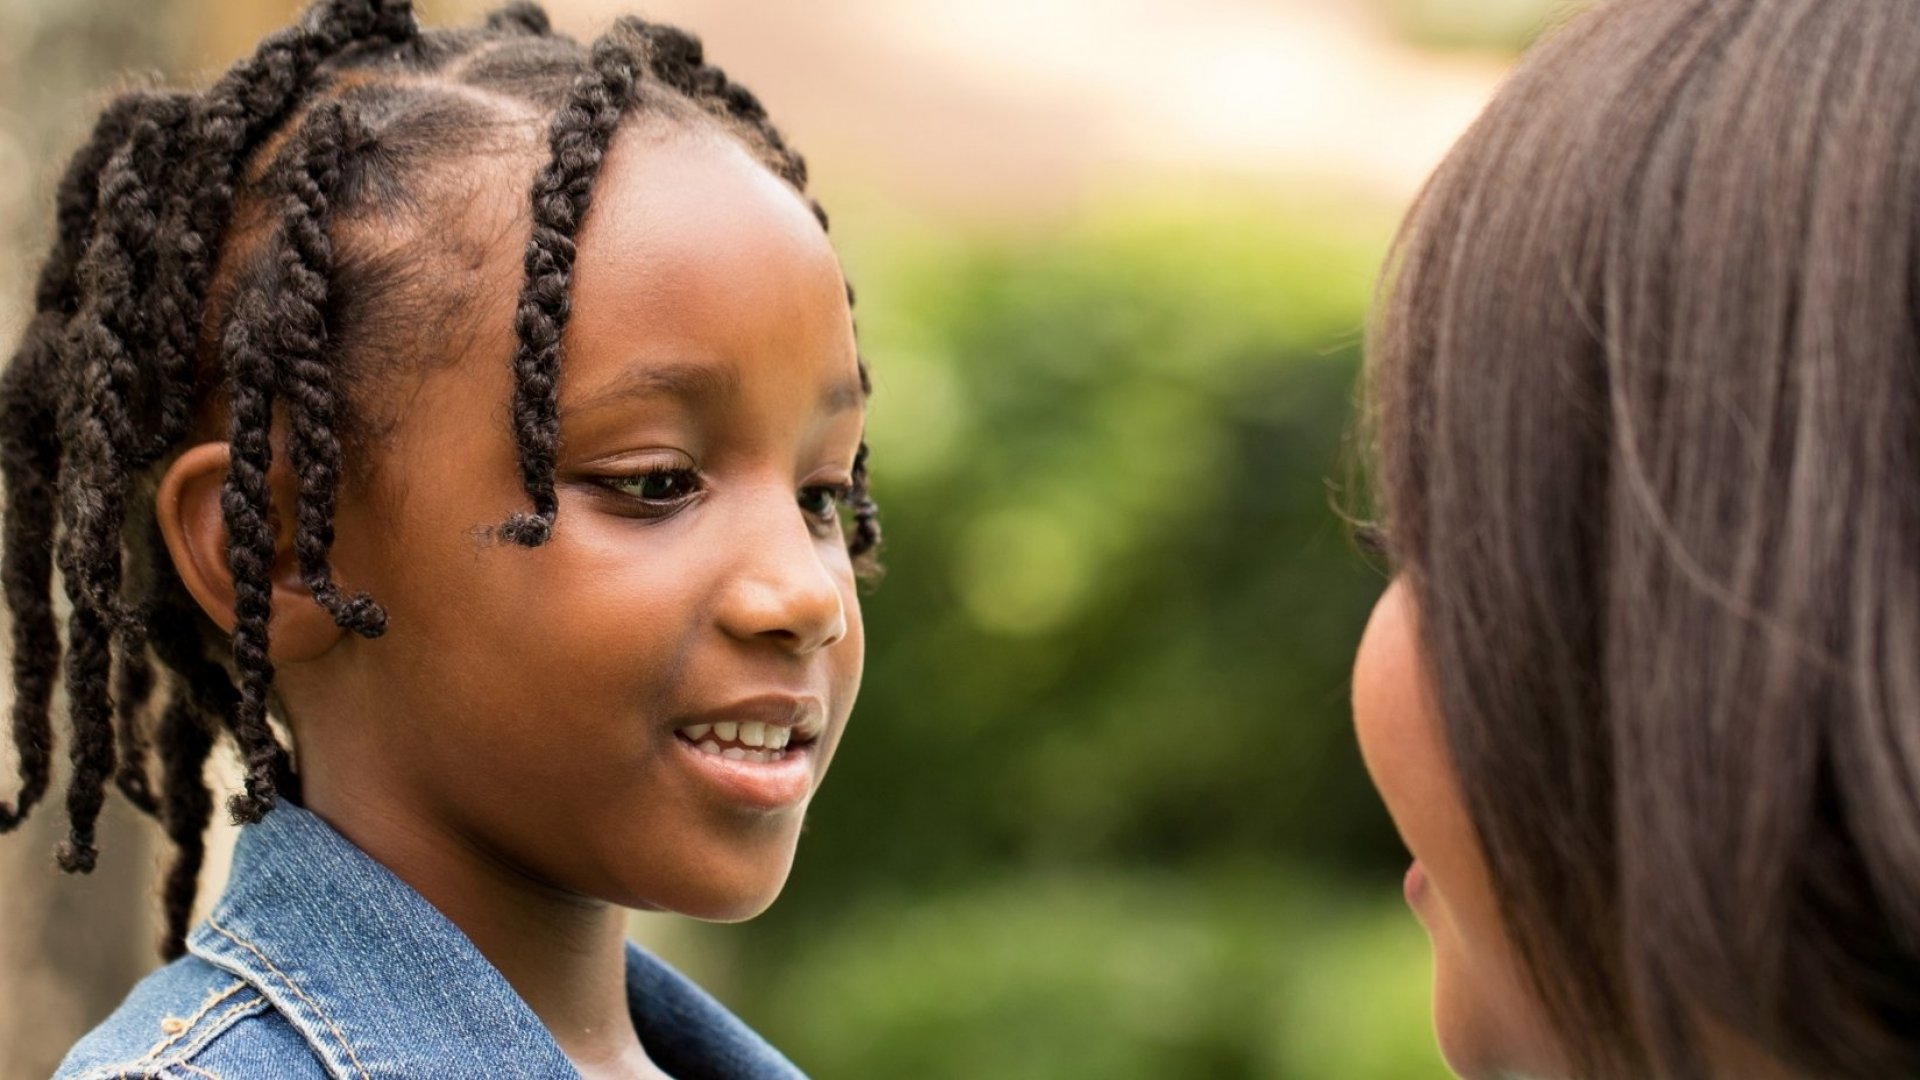 Want to Raise Mentally Strong Kids? Stop Saying These 5 Things